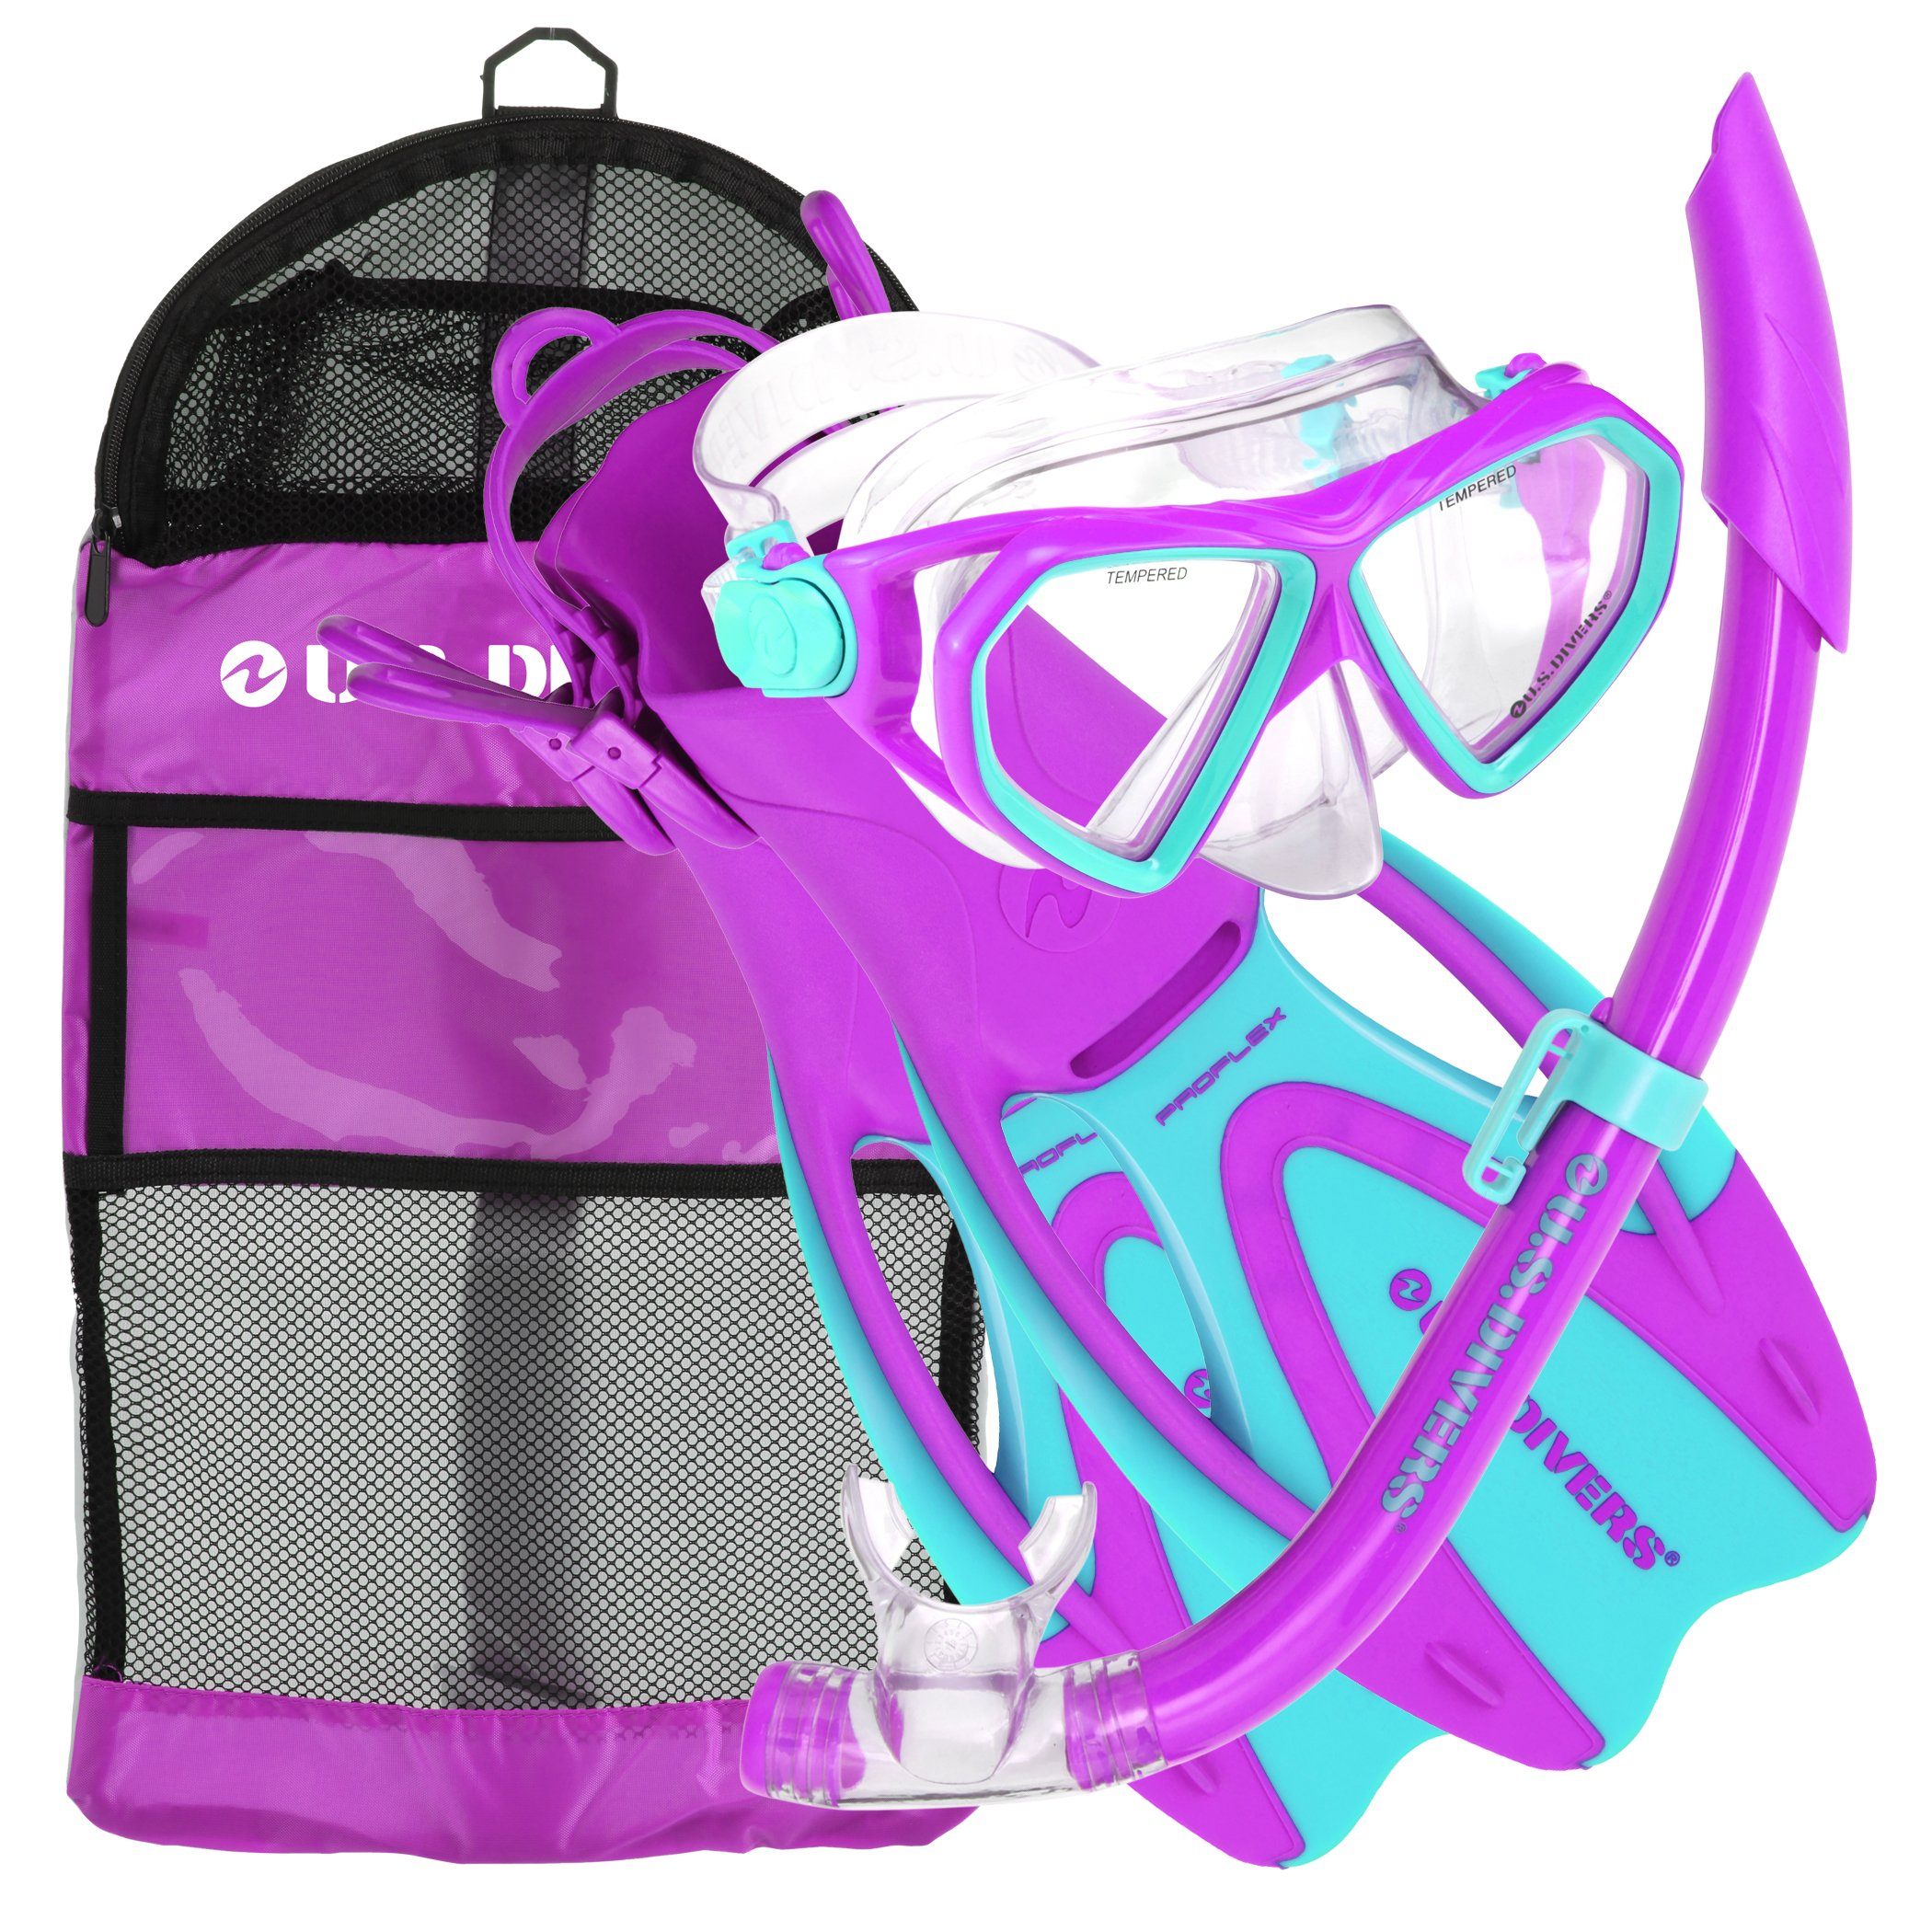 U.S. Divers Dorado JR Mask Fins Snorkel Set, Fun Purple, Small by U.S. Divers